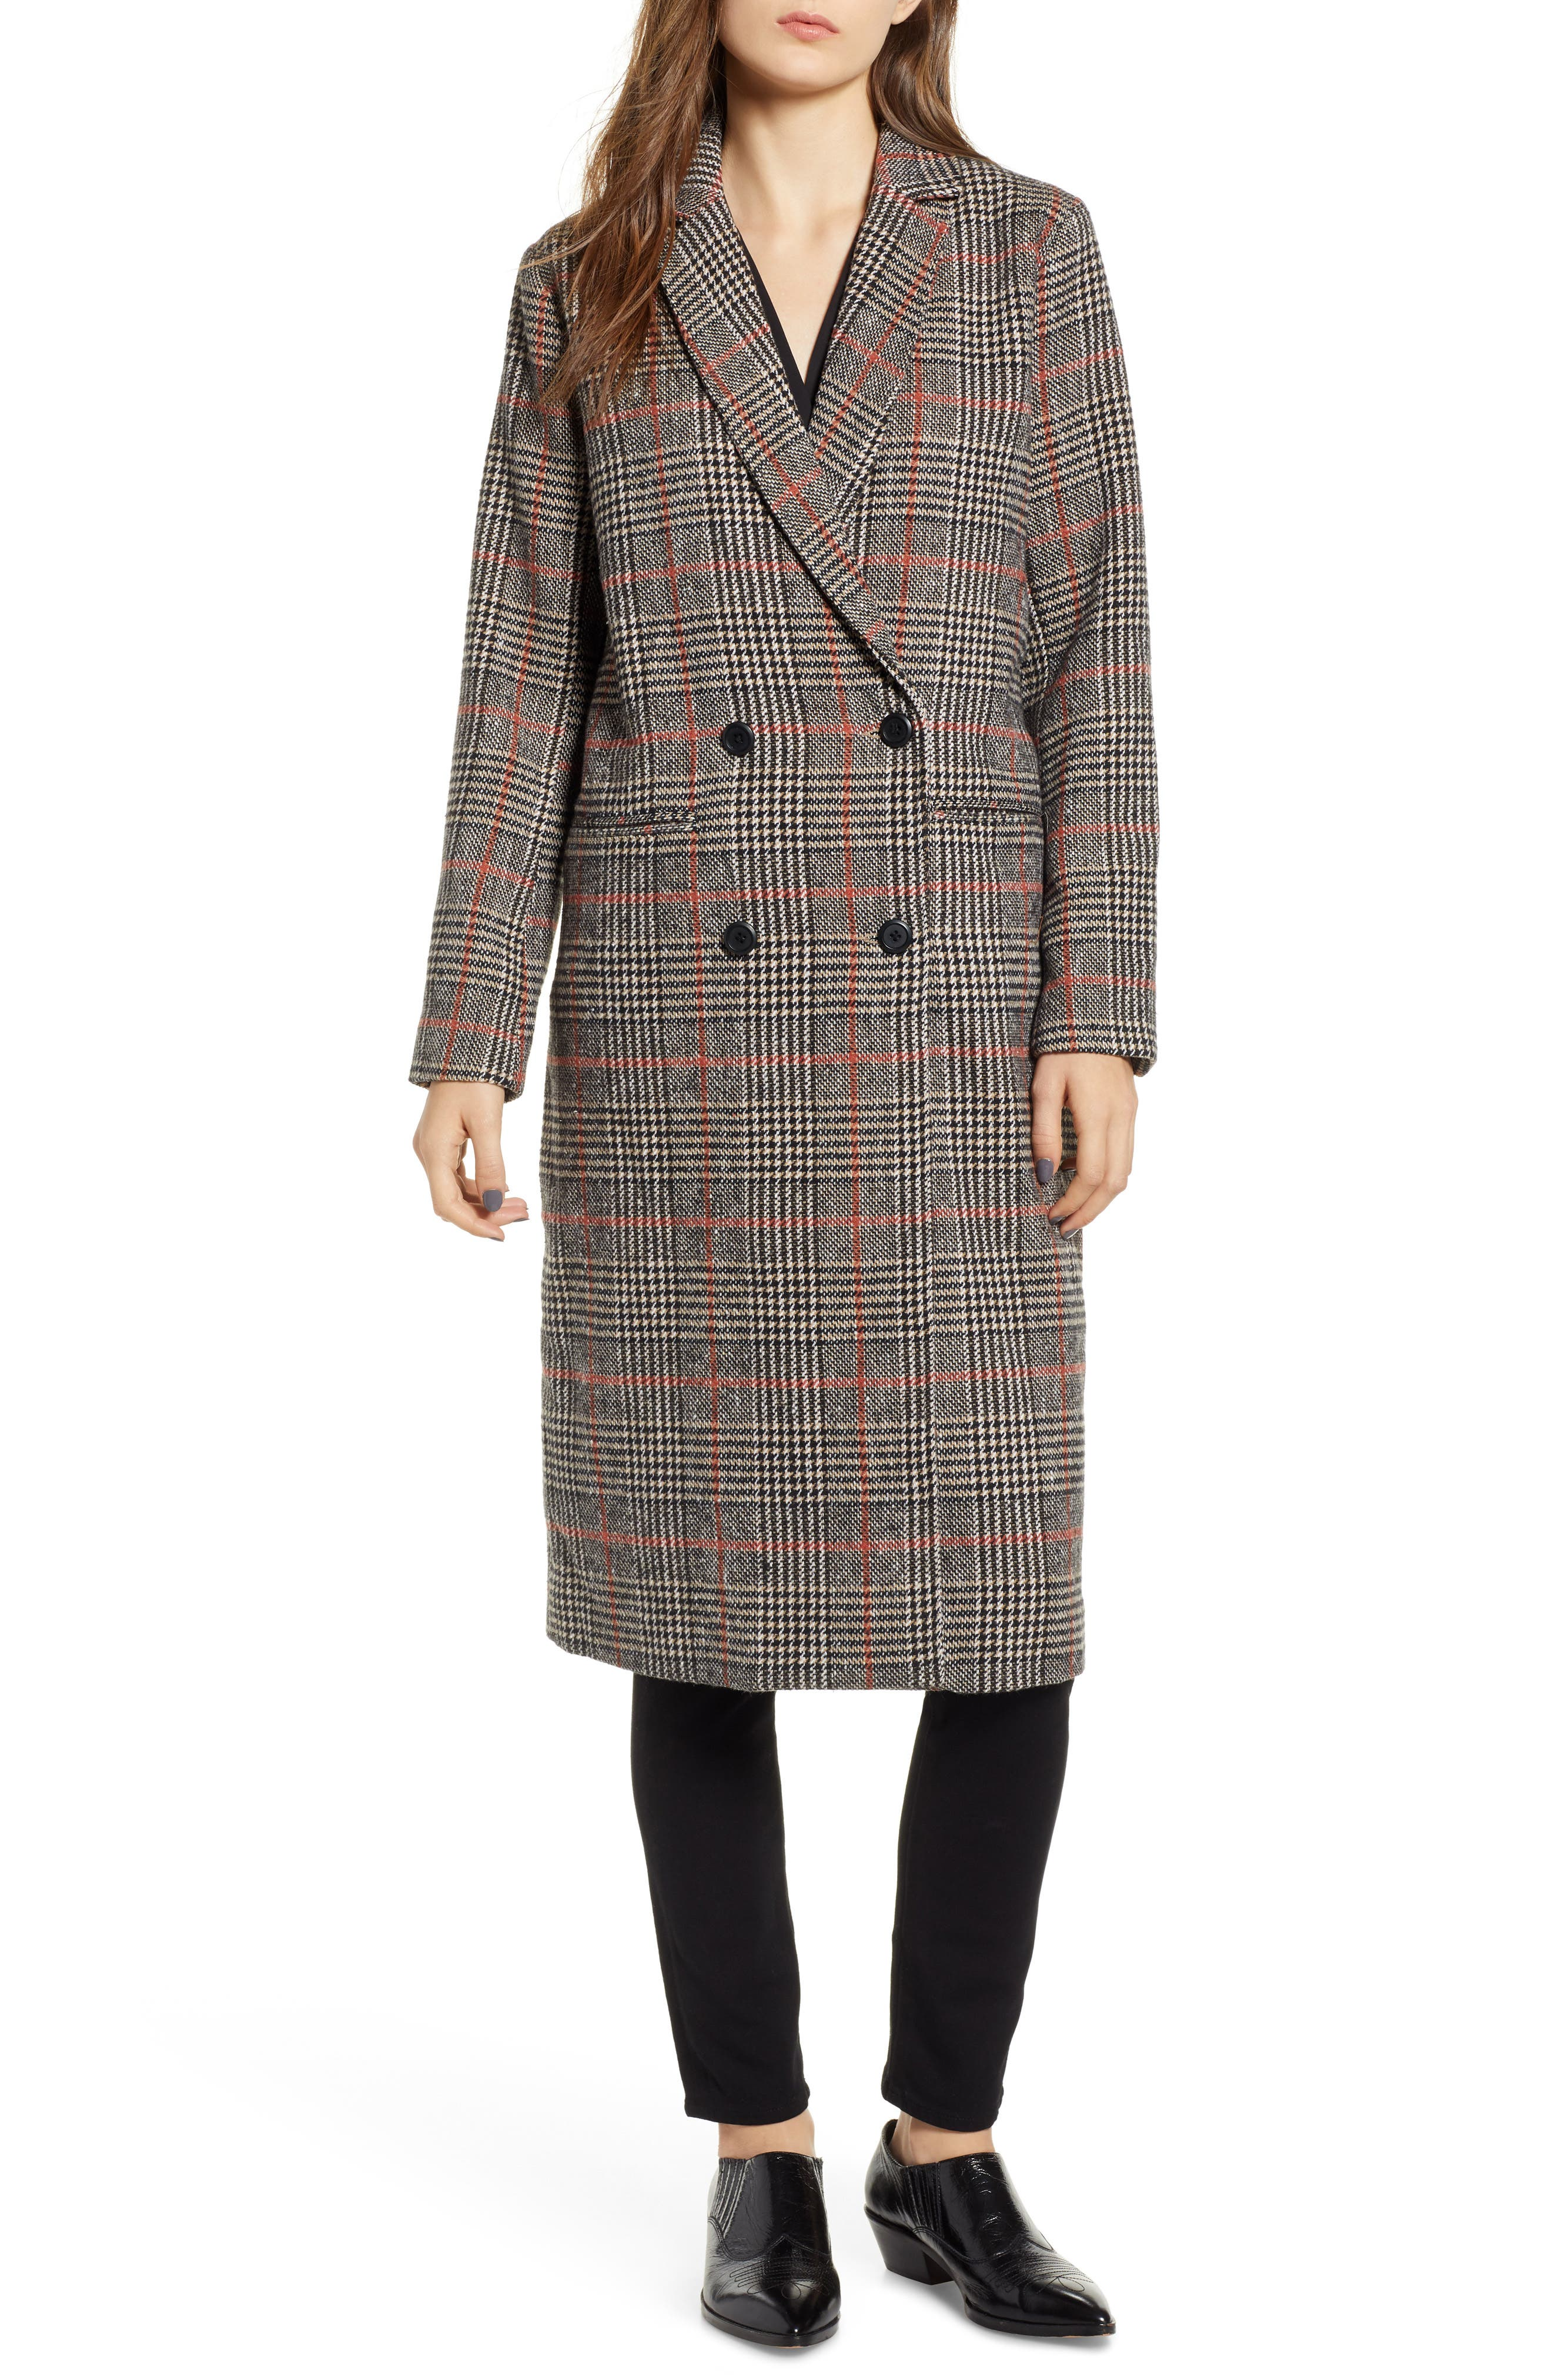 CUPCAKES AND CASHMERE,                             Plaid Duster Jacket,                             Alternate thumbnail 4, color,                             020